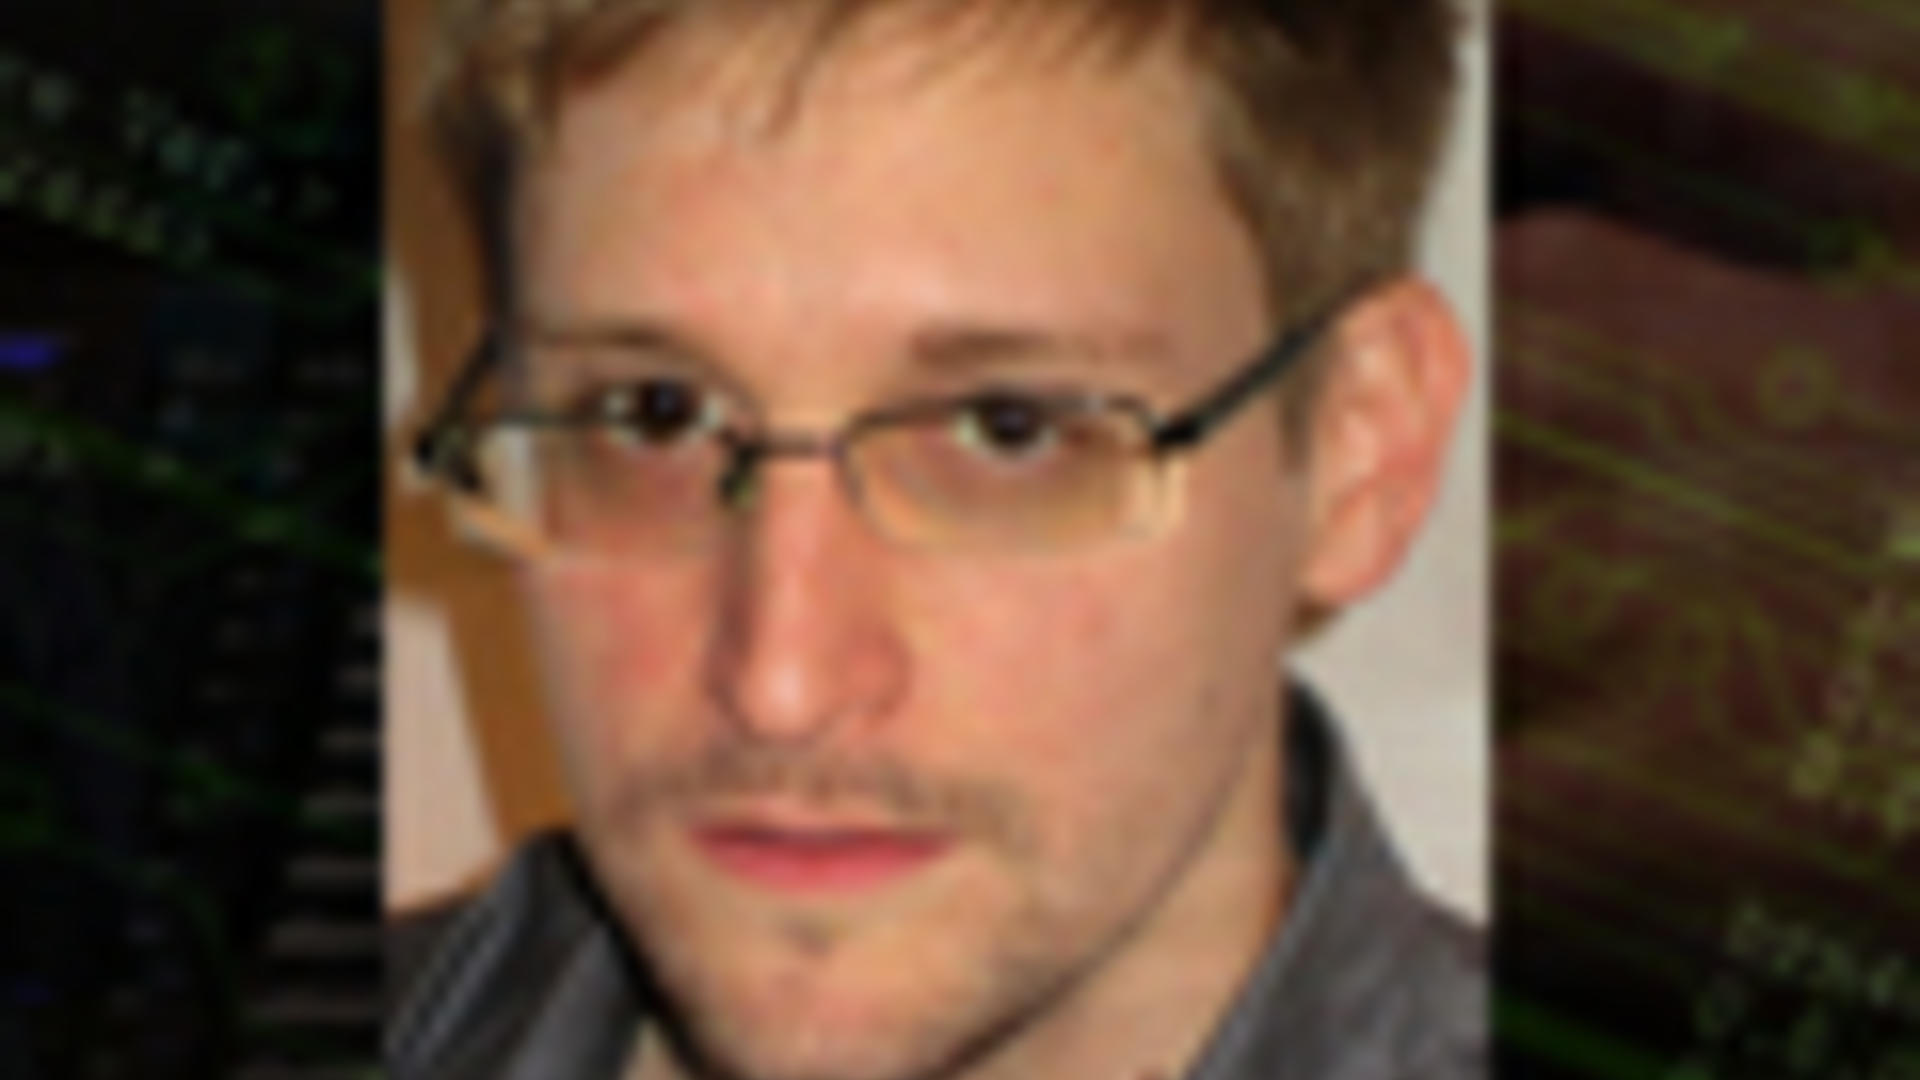 American Classic Porn 1 24 39 nsa leaker edward snowden: what does he know?